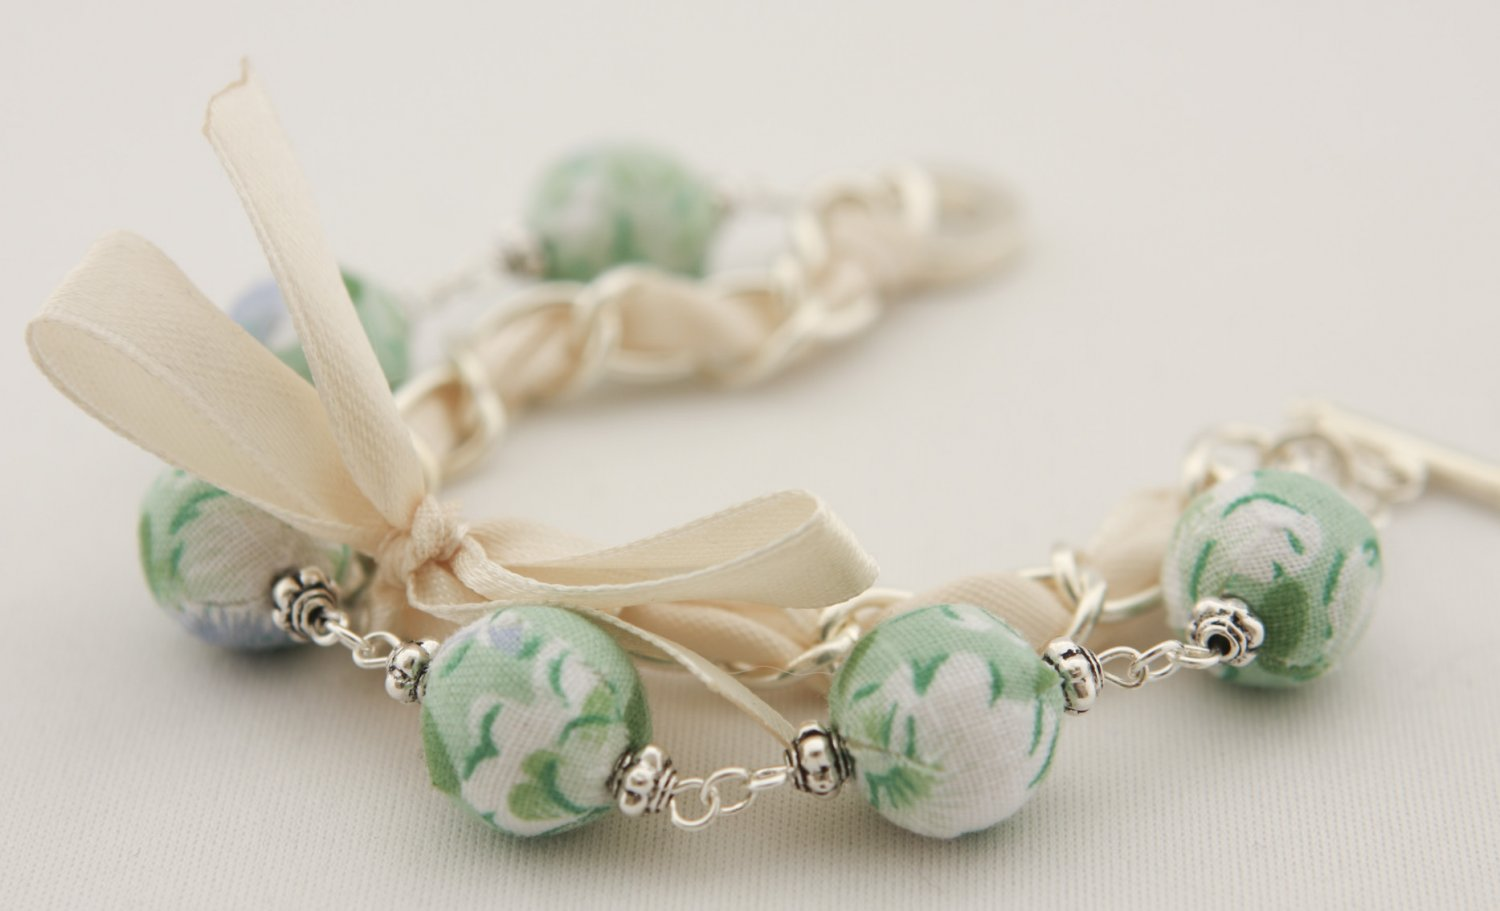 Light green floral cotton beads and beige satin ribbon bracelet